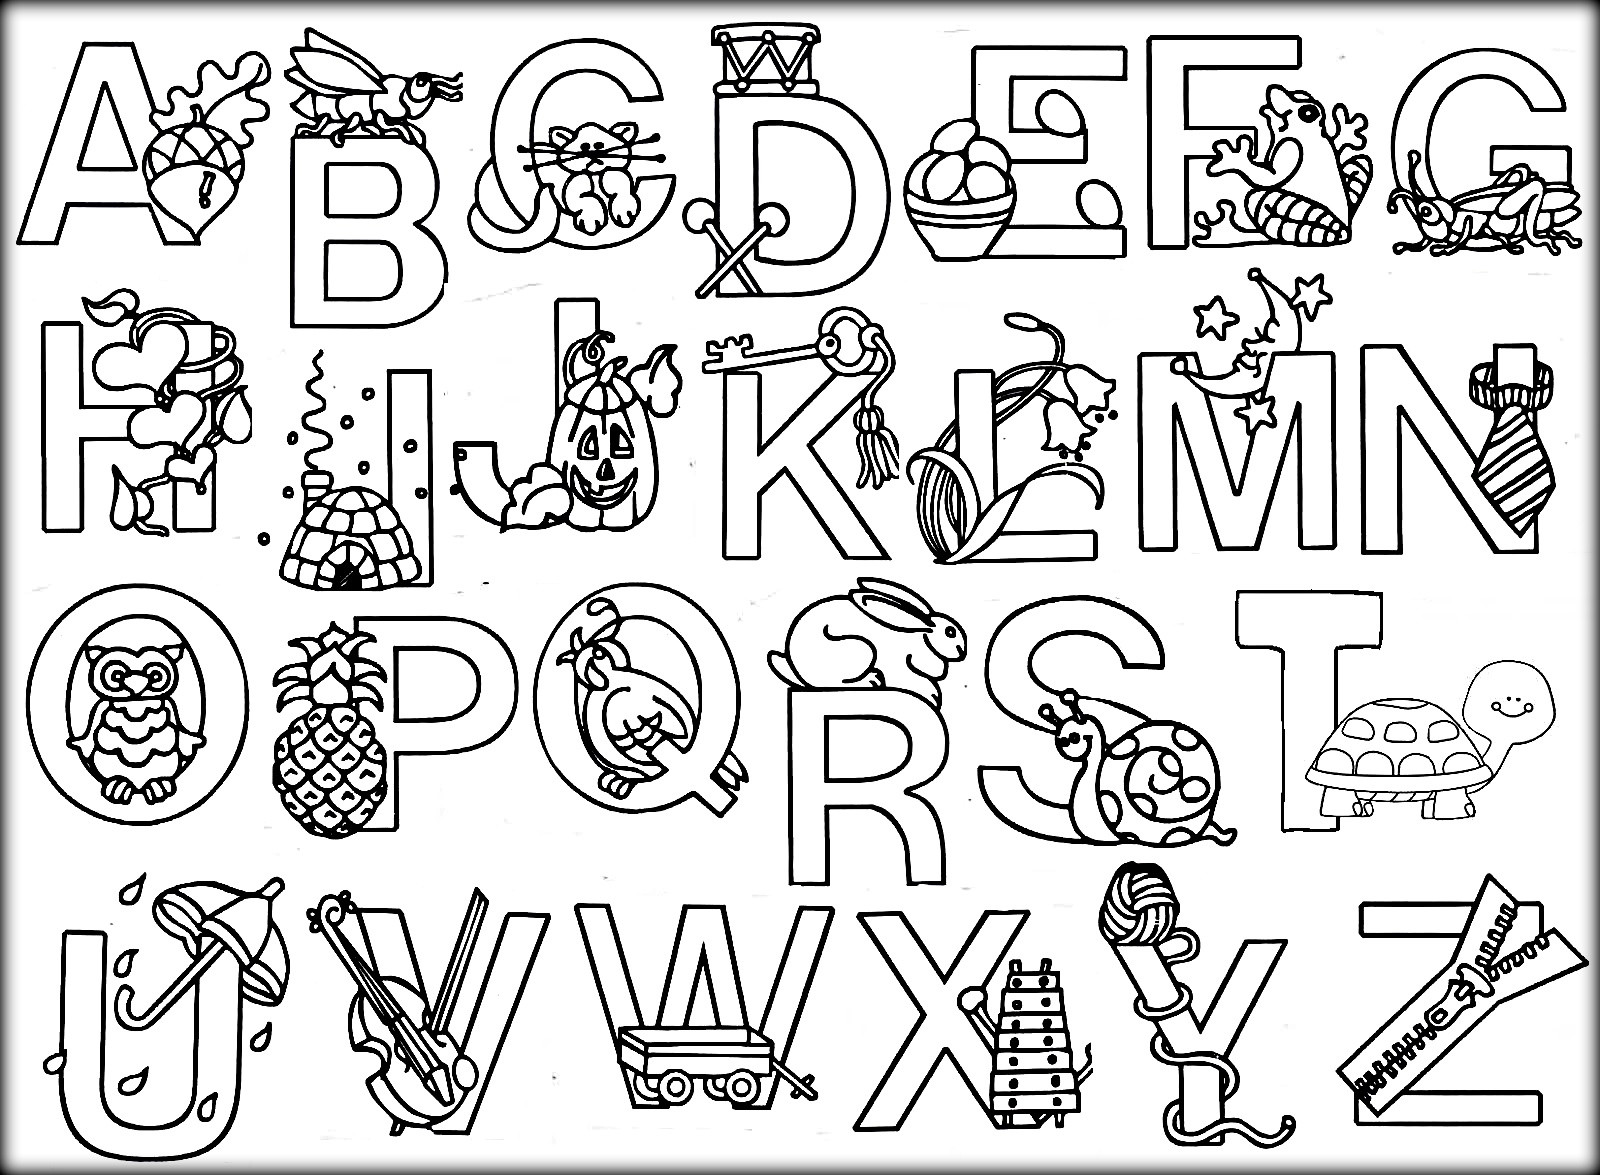 abc coloring page be creative with abc coloring pages coloring abc page